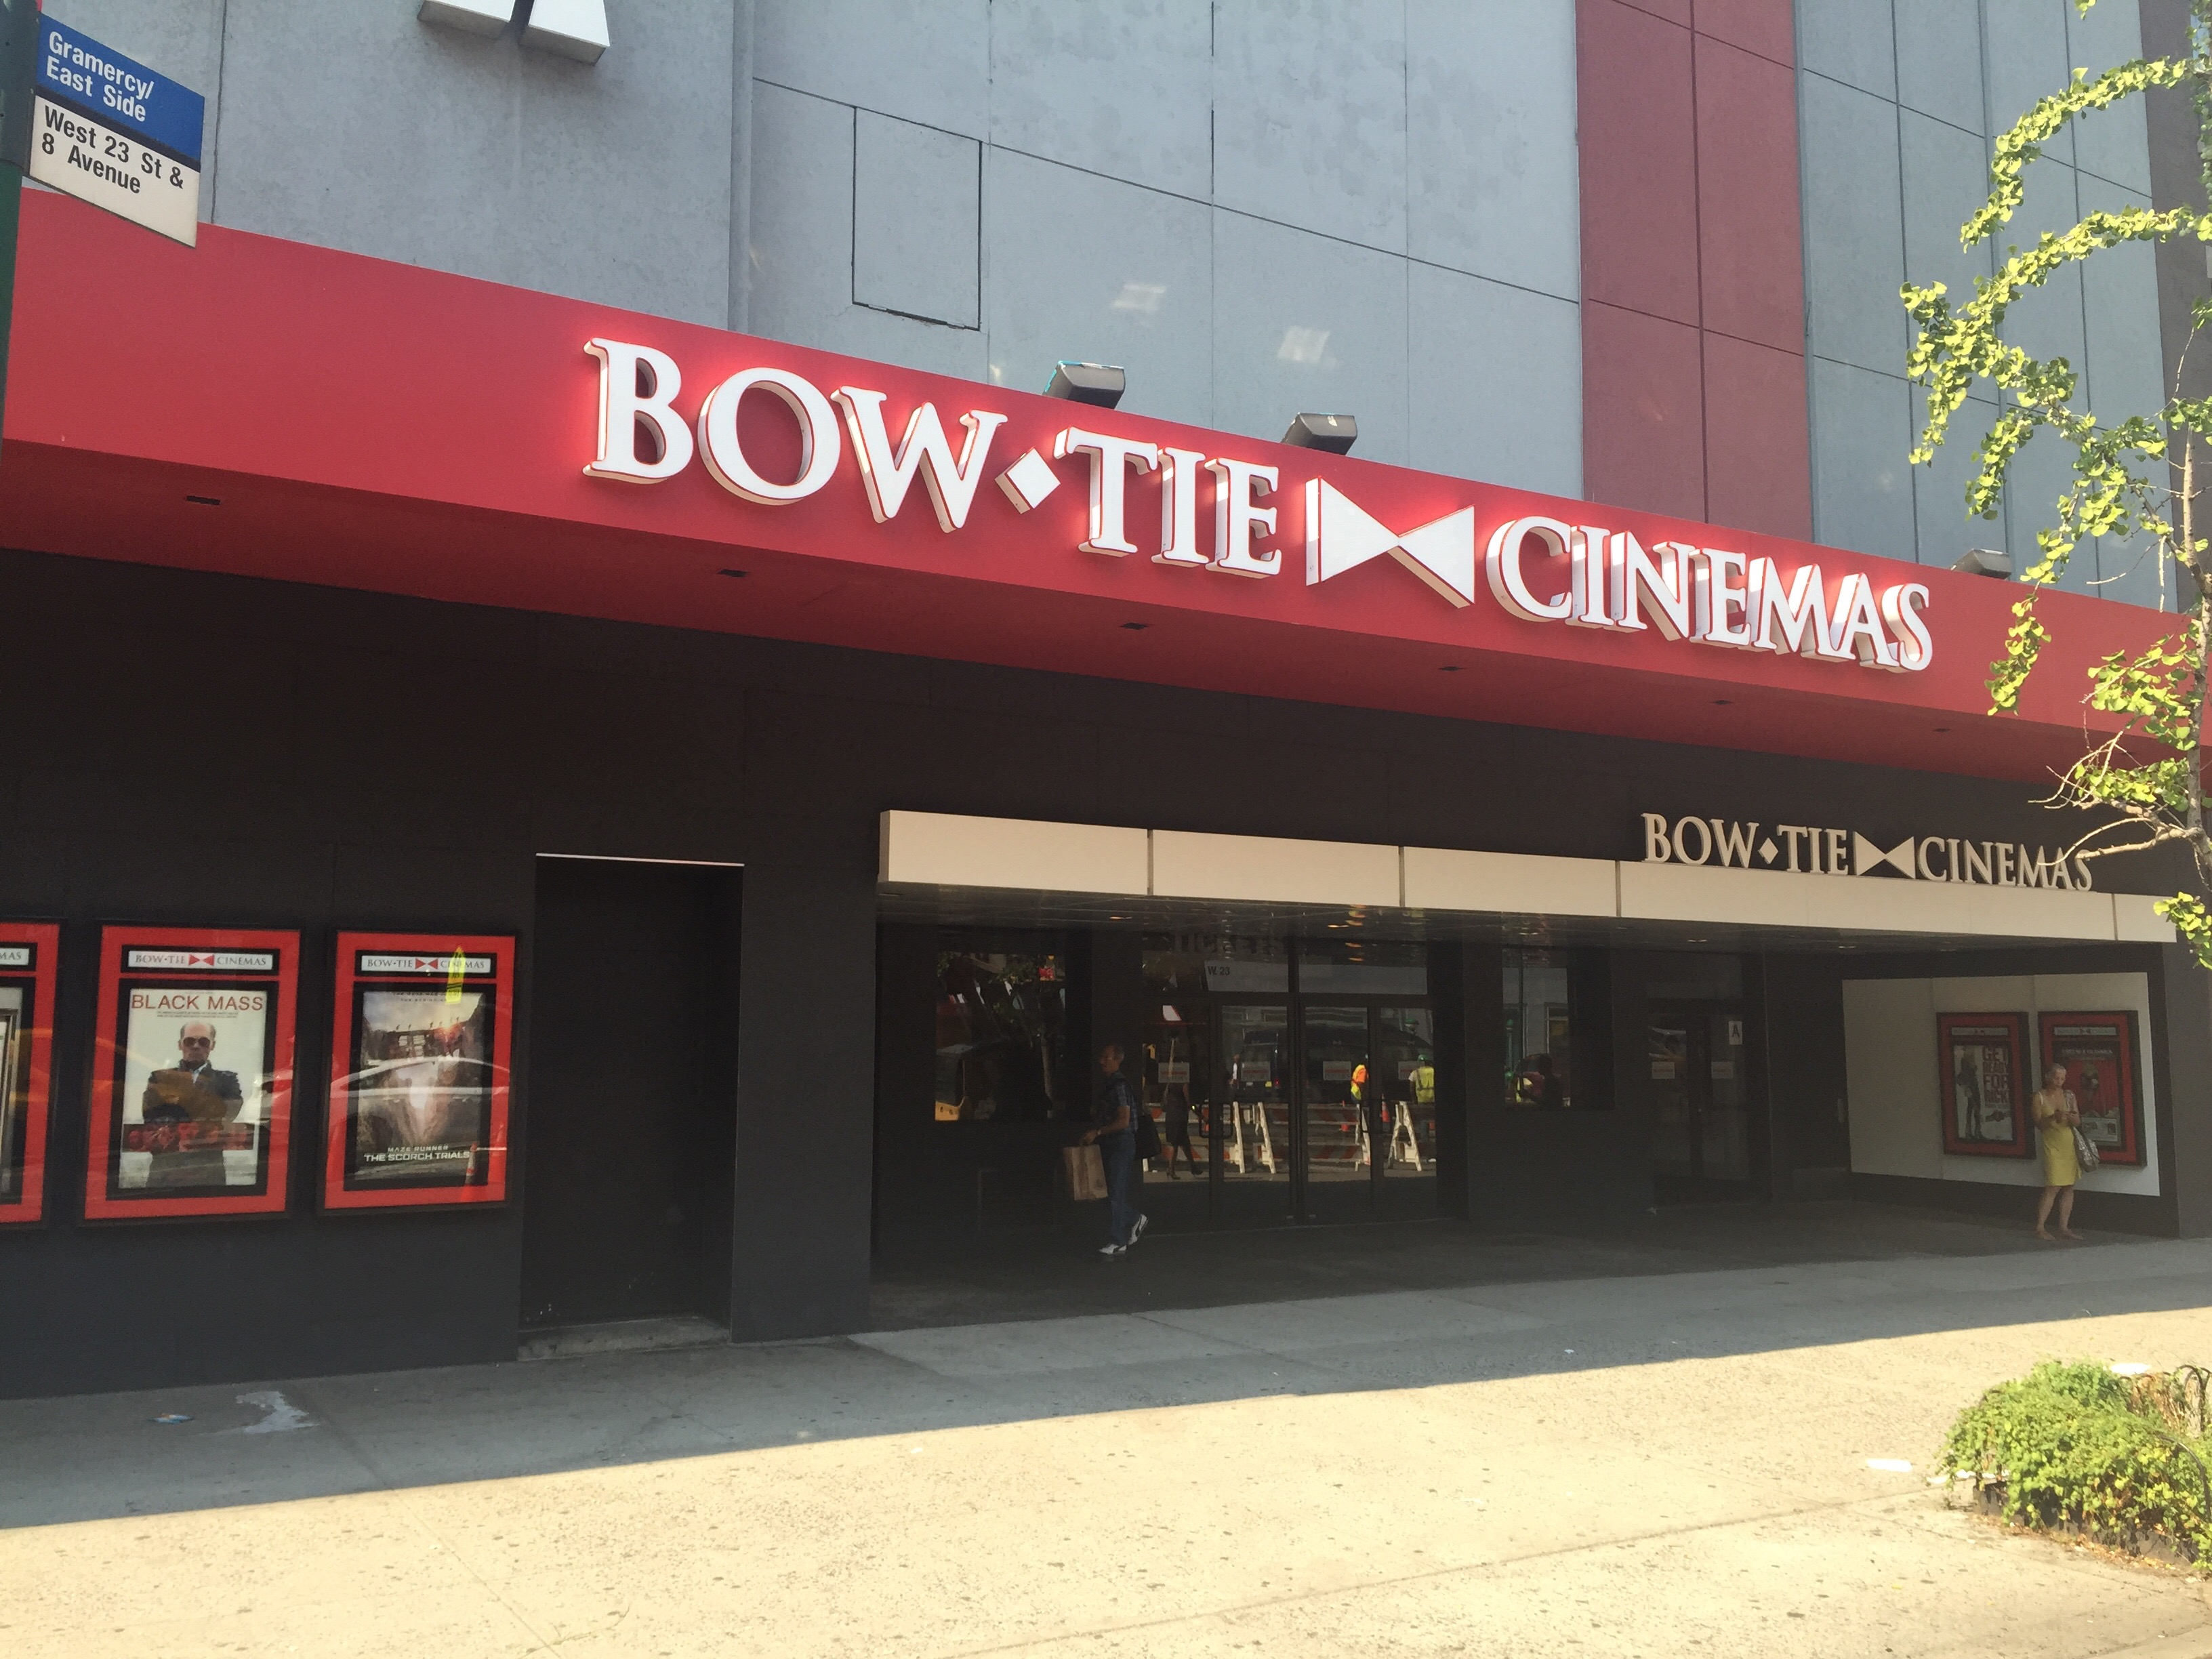 bowtie cinema trailers